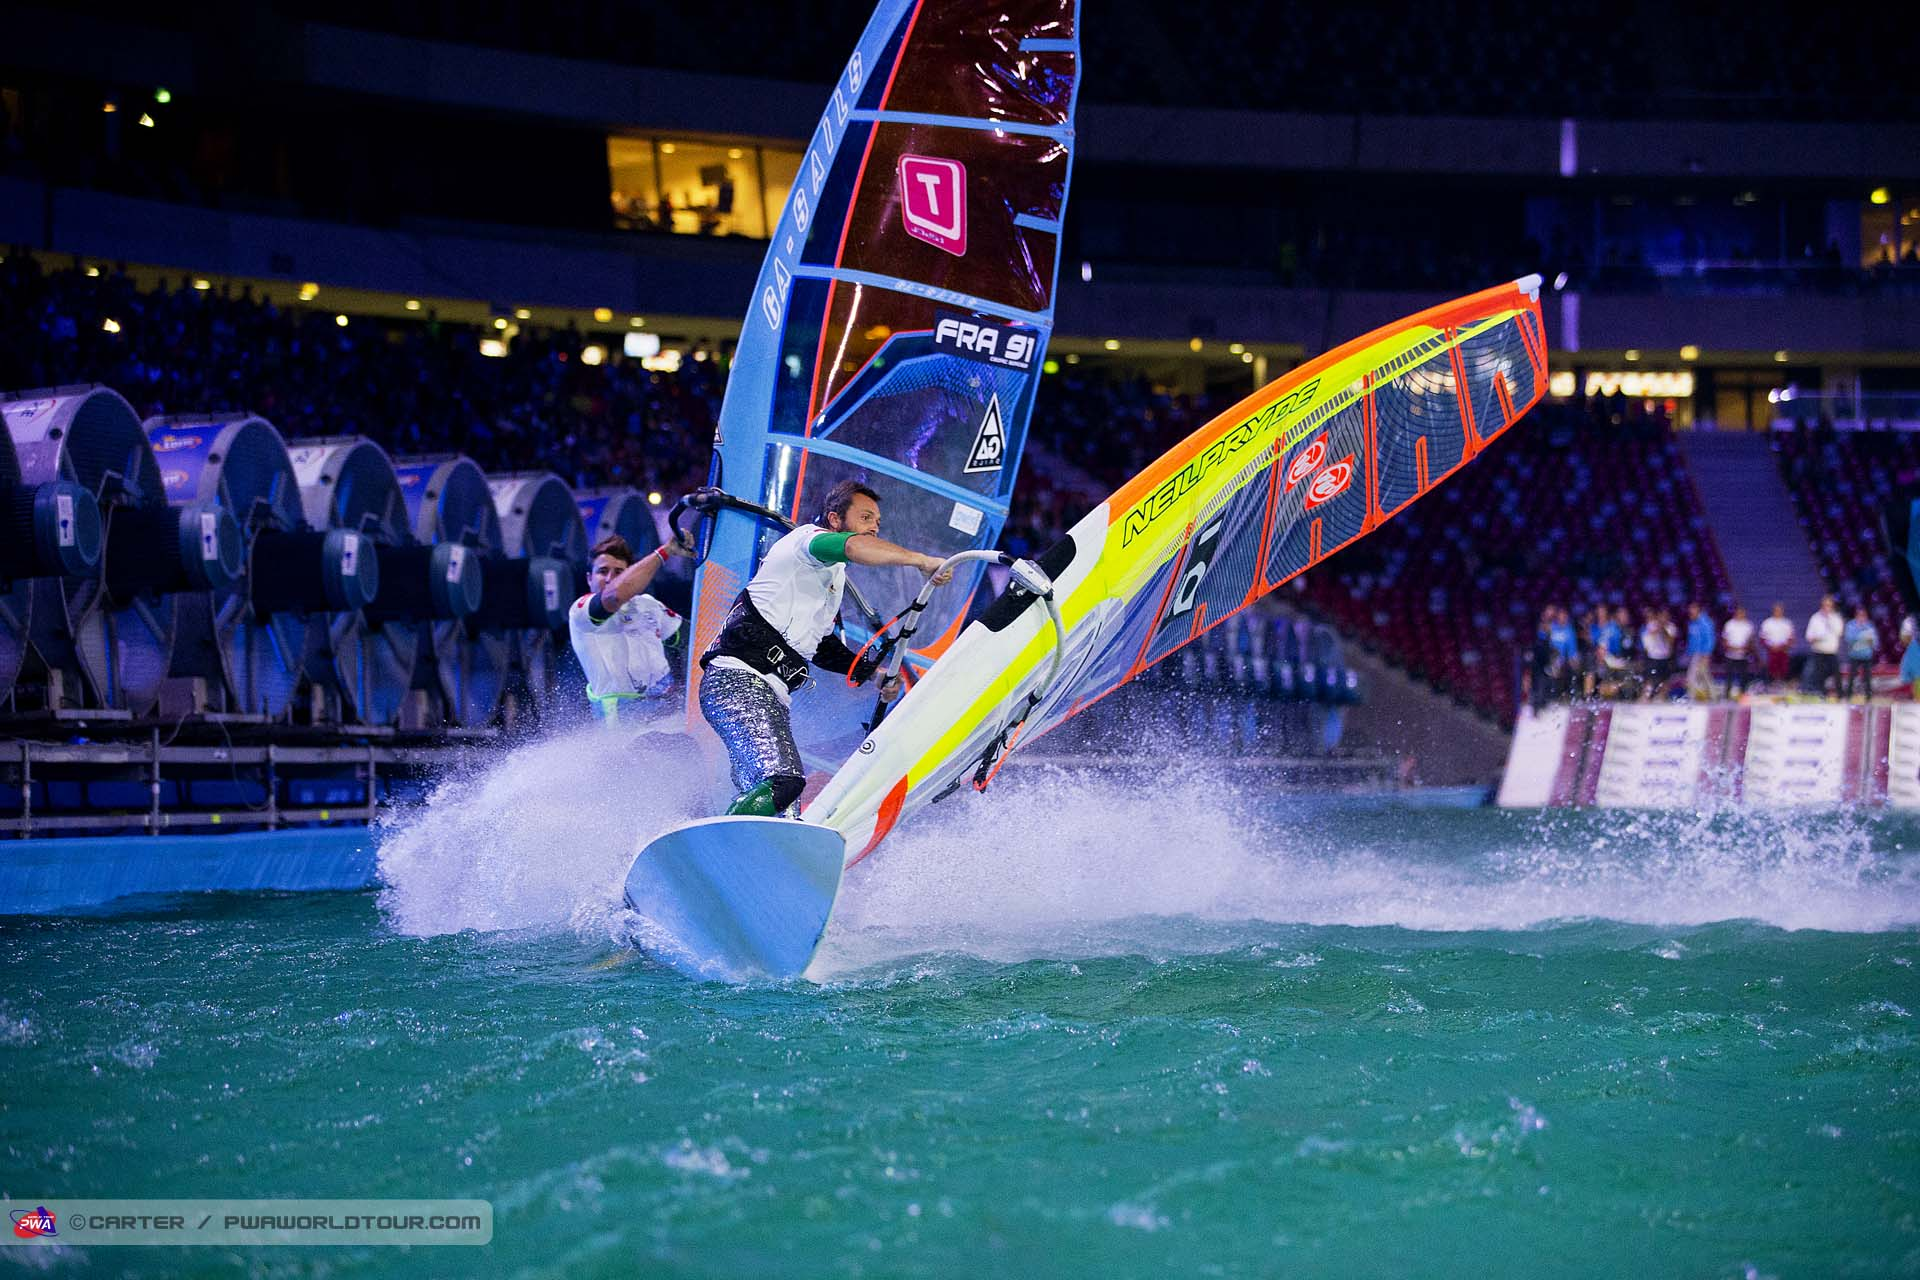 Andrea Rosati at PWA World Cup